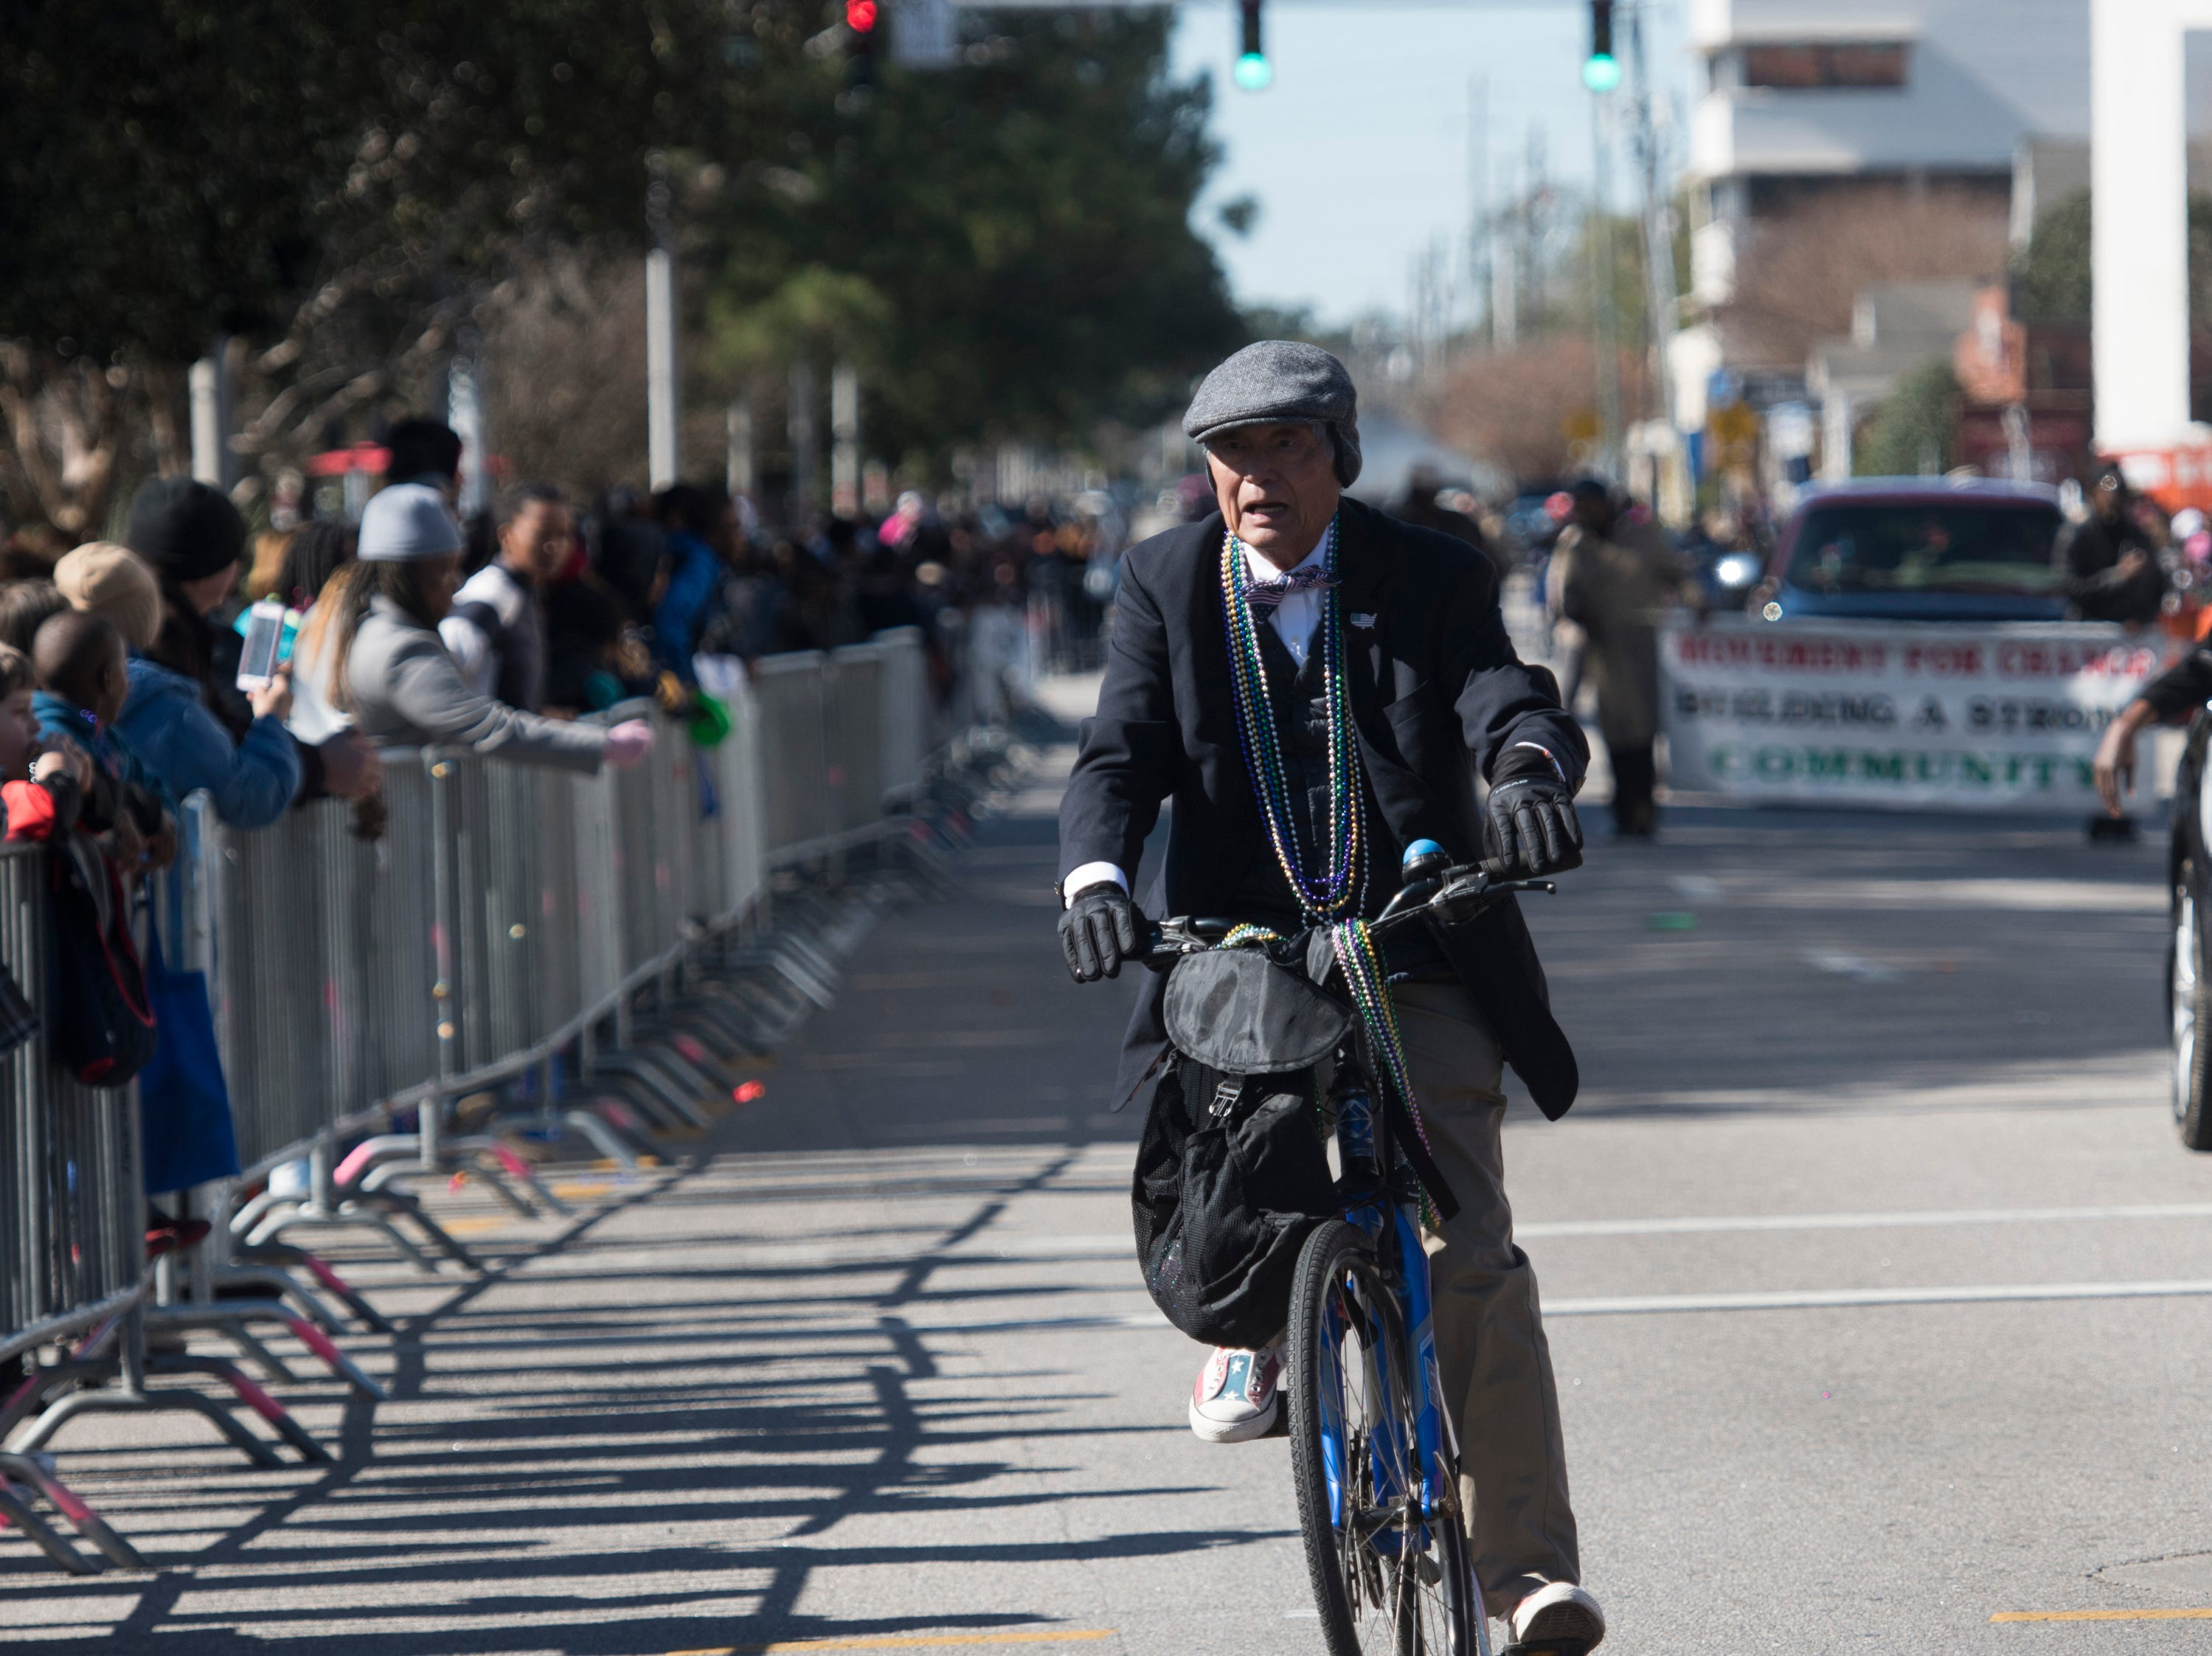 Pensacola City Councilman, P.C. WU hits the Martin Luther King, Jr. parade route on a bike on Monday, Jan. 21, 2019.